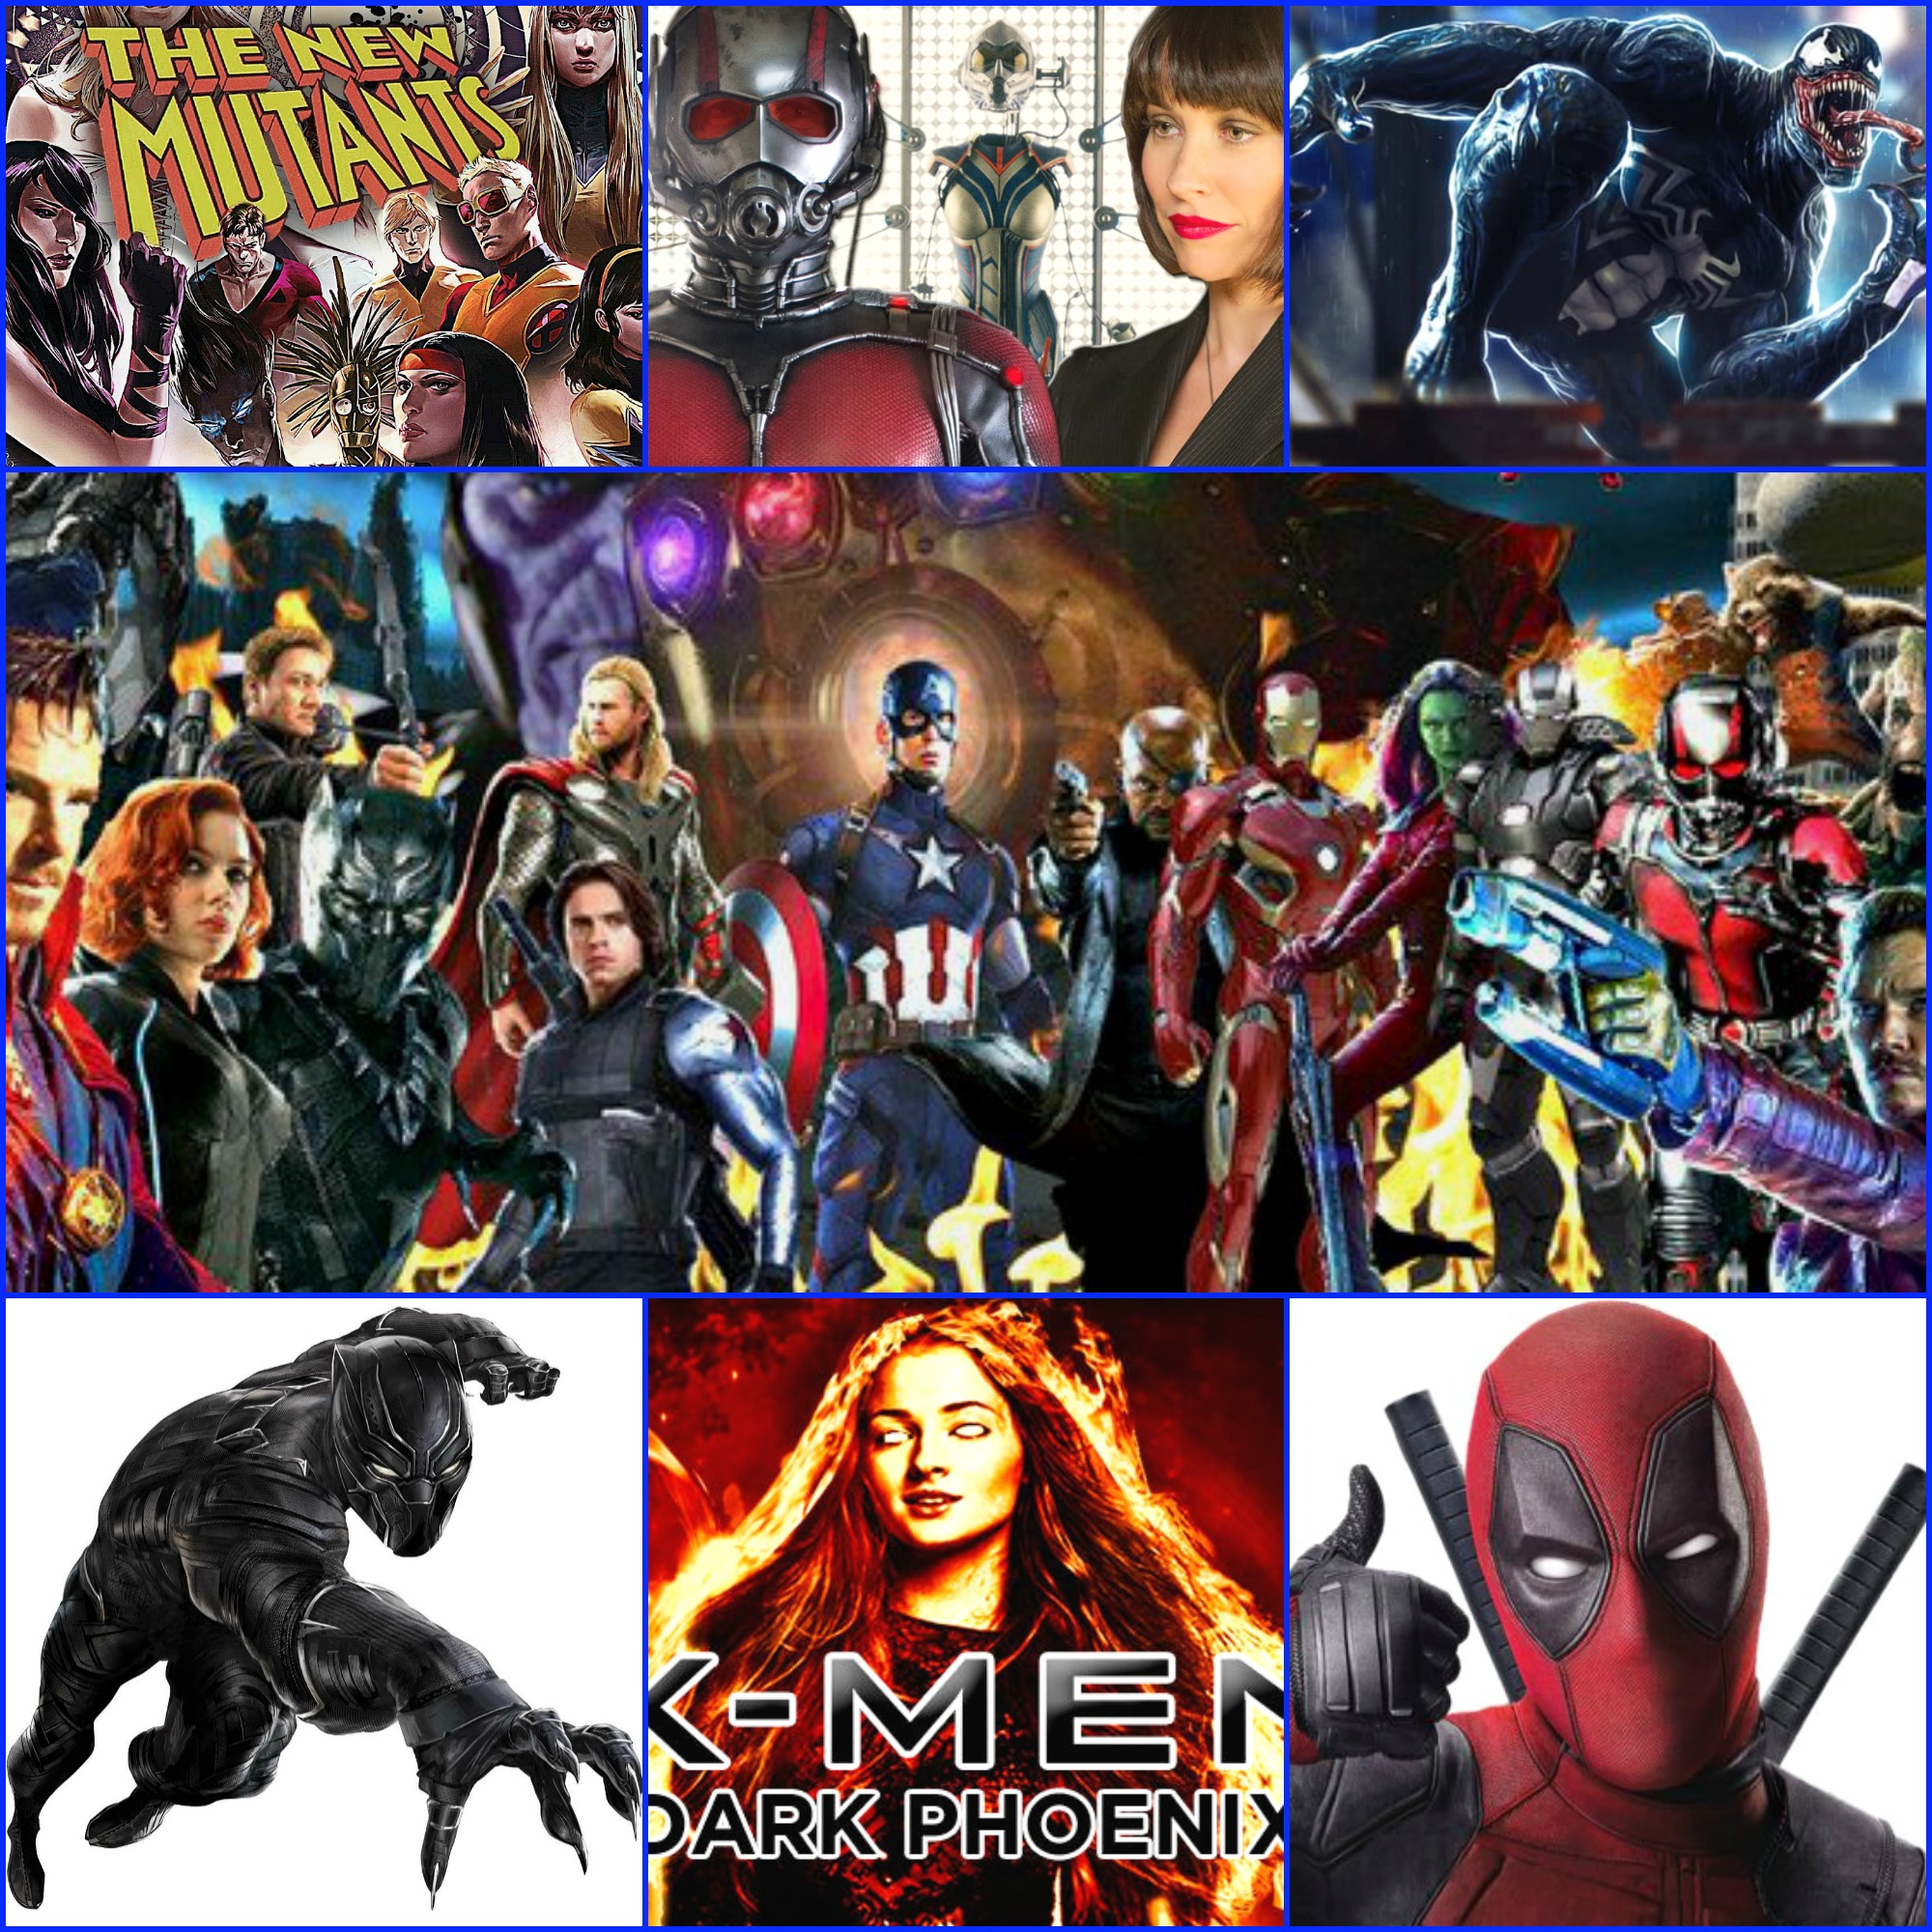 2018 Marvel Releases: Next year's movie releases are a Marvel fanboy's ultimate wet dream